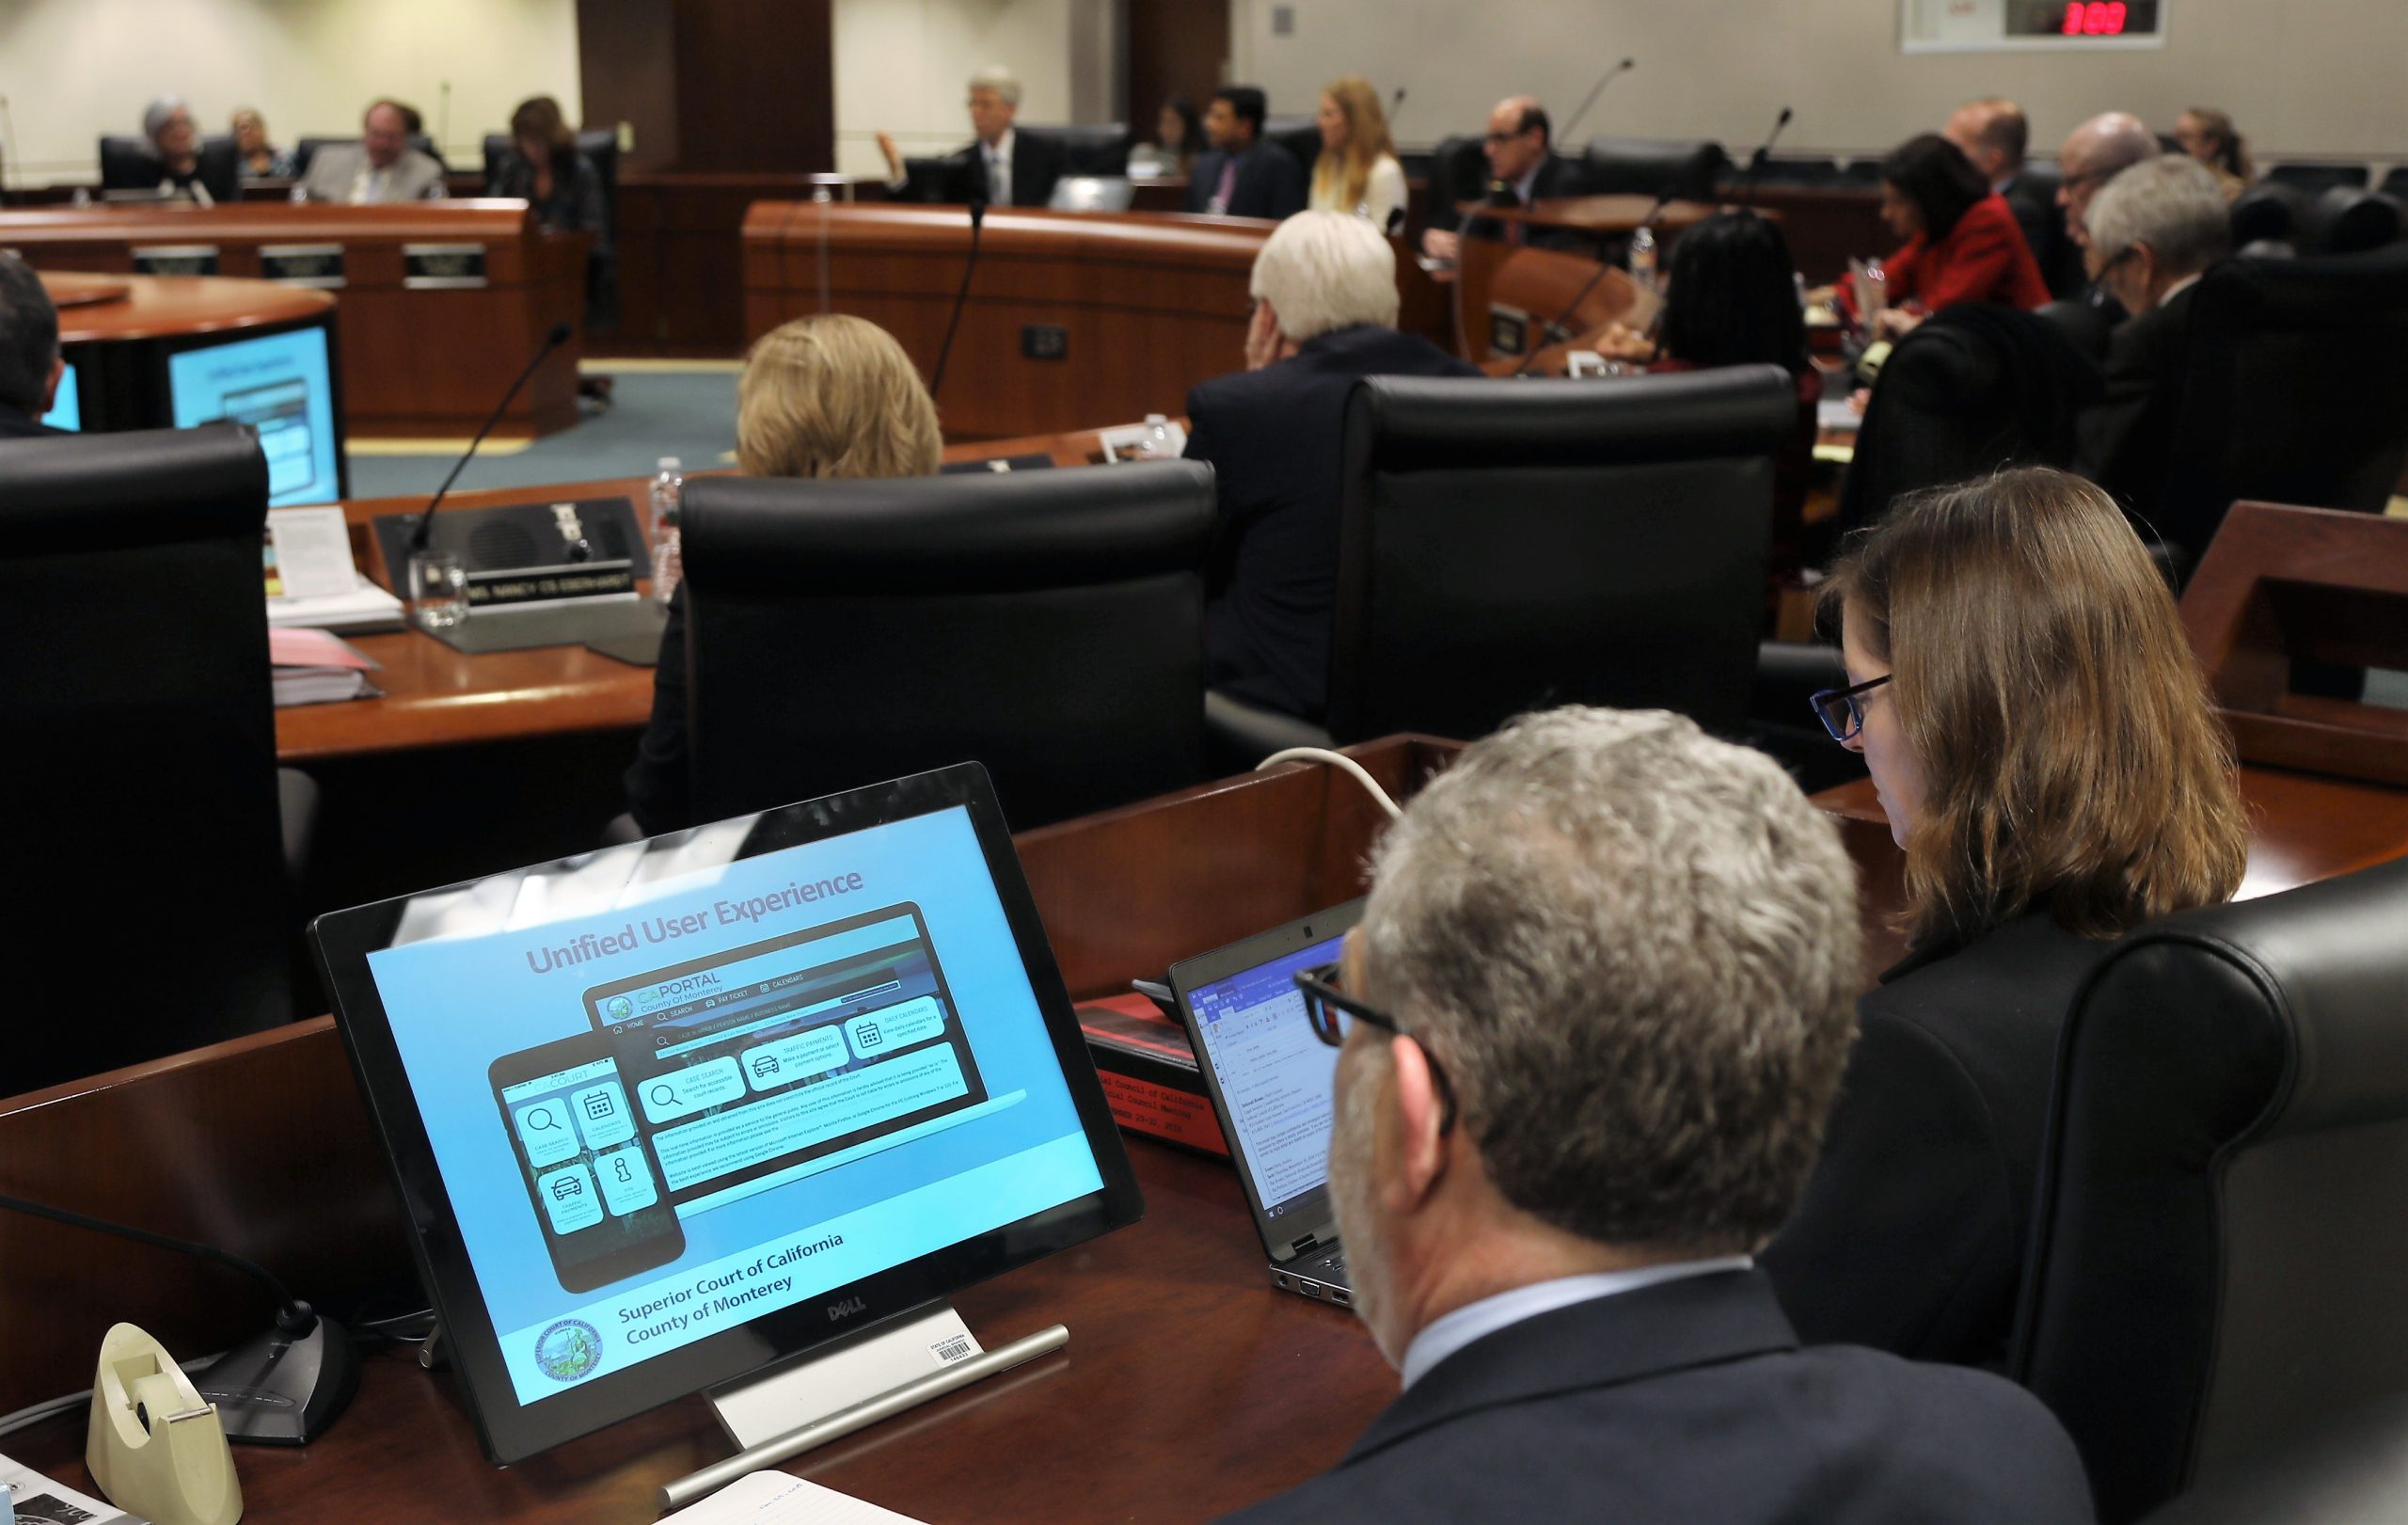 Council Adopts New Rules On Appointed Counsel In Death